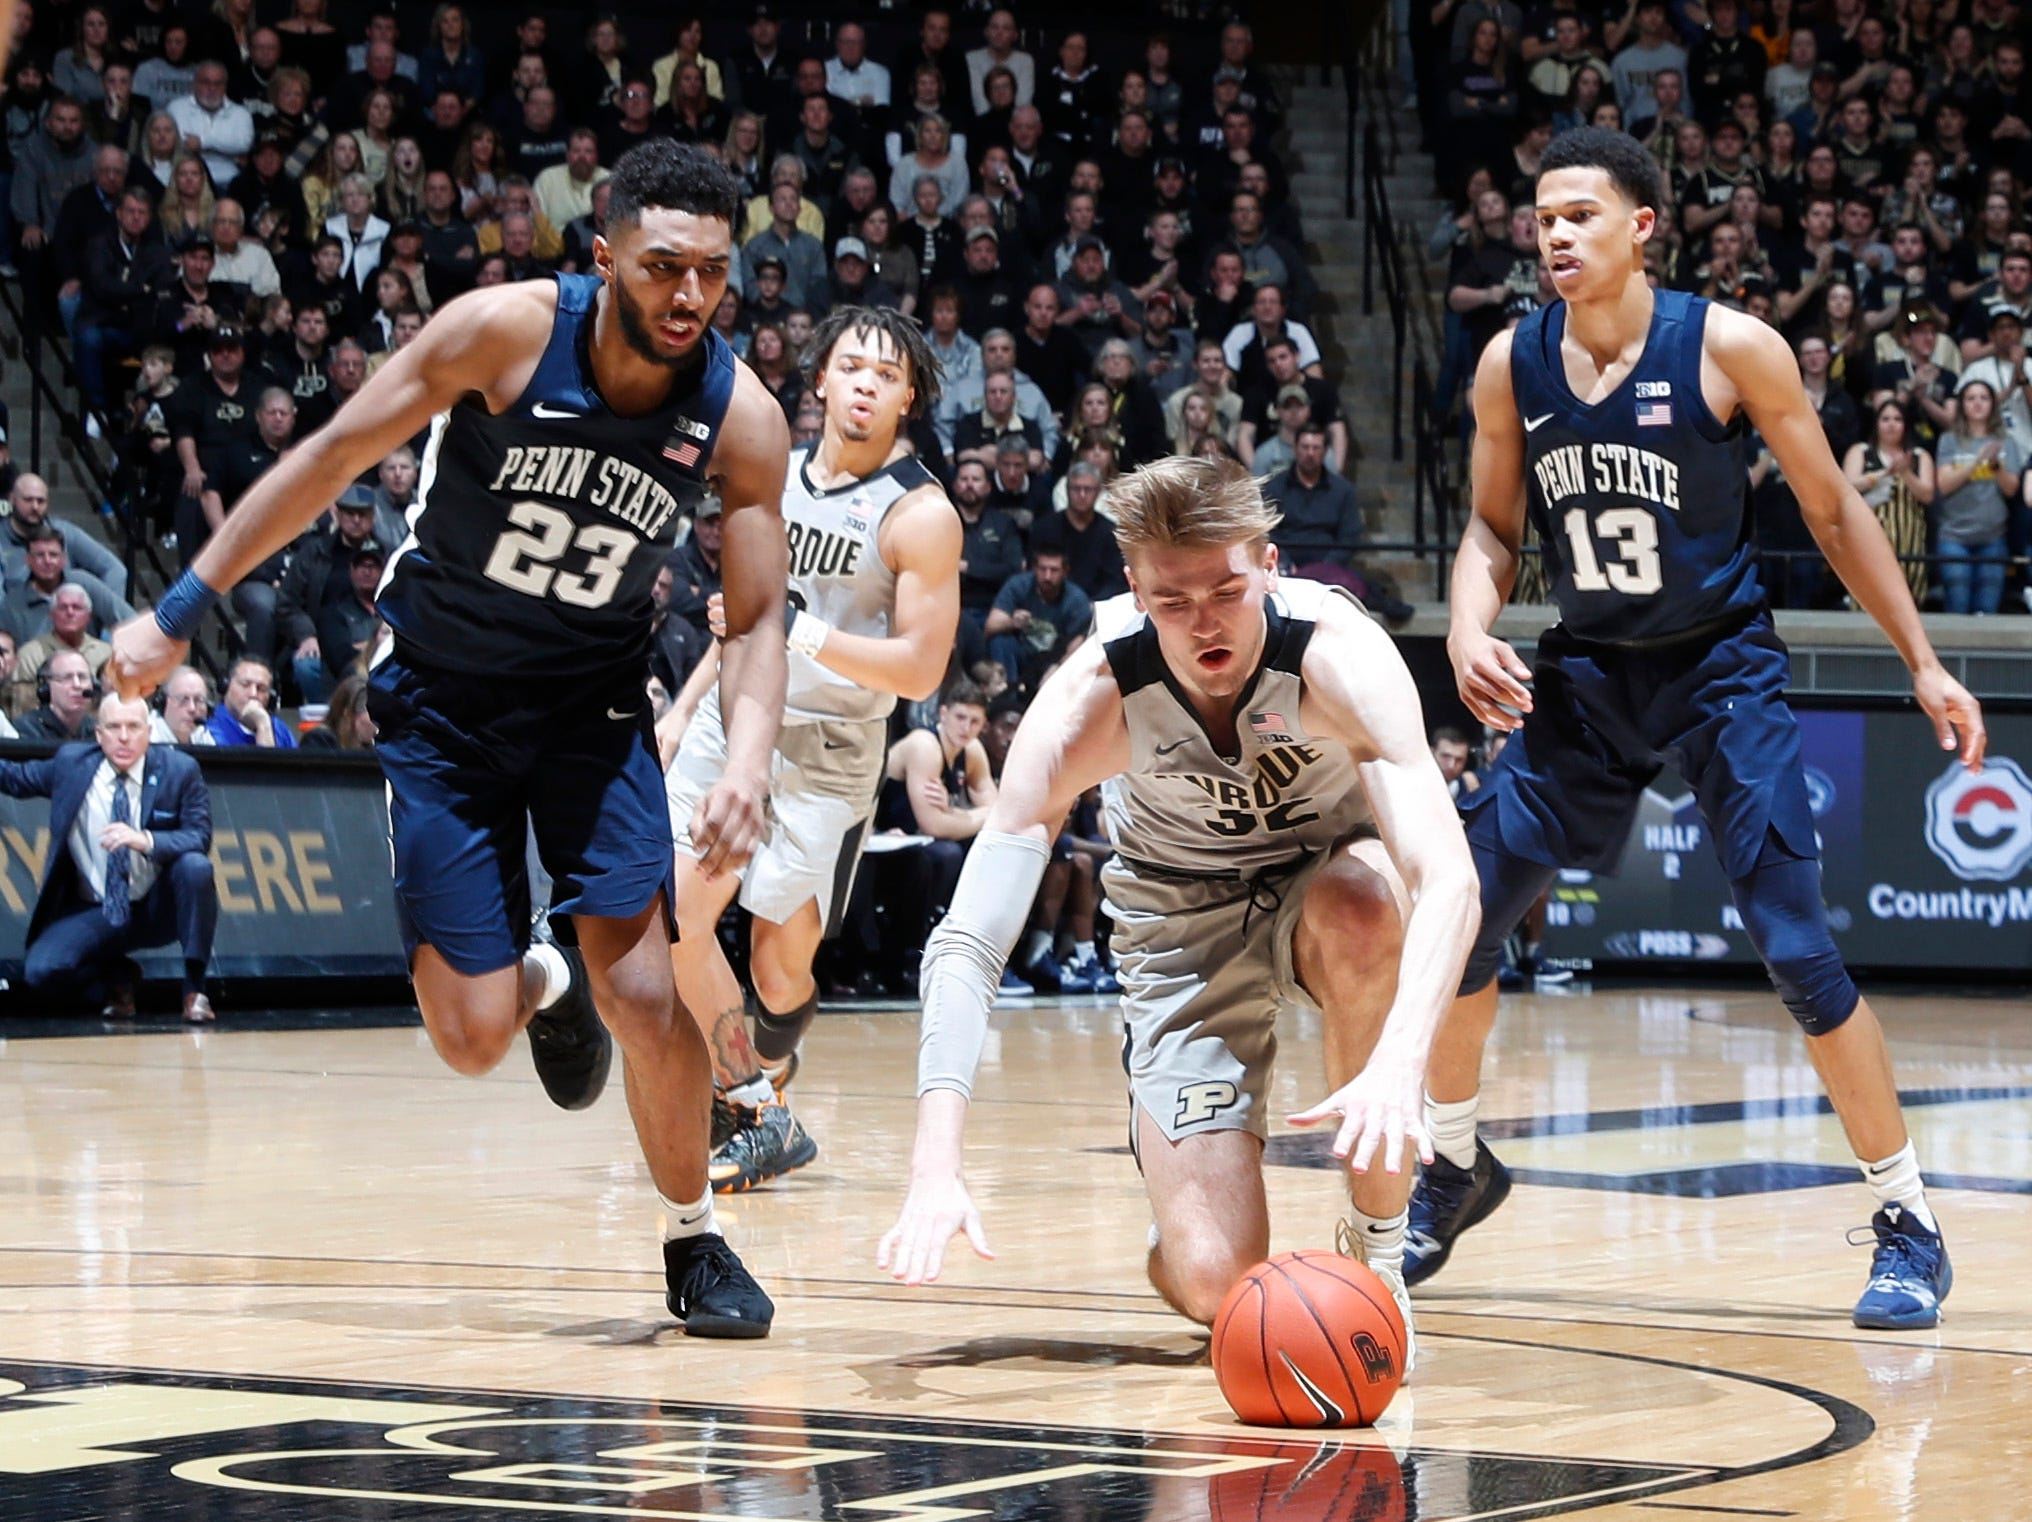 Feb 16, 2019; West Lafayette, IN, USA; Purdue Boilermakers center Matt Haarms (32) is fouled as he drives to the basket against Penn State Nittany Lions guard Josh Reaves (23) during the second half at Mackey Arena. Mandatory Credit: Brian Spurlock-USA TODAY Sports